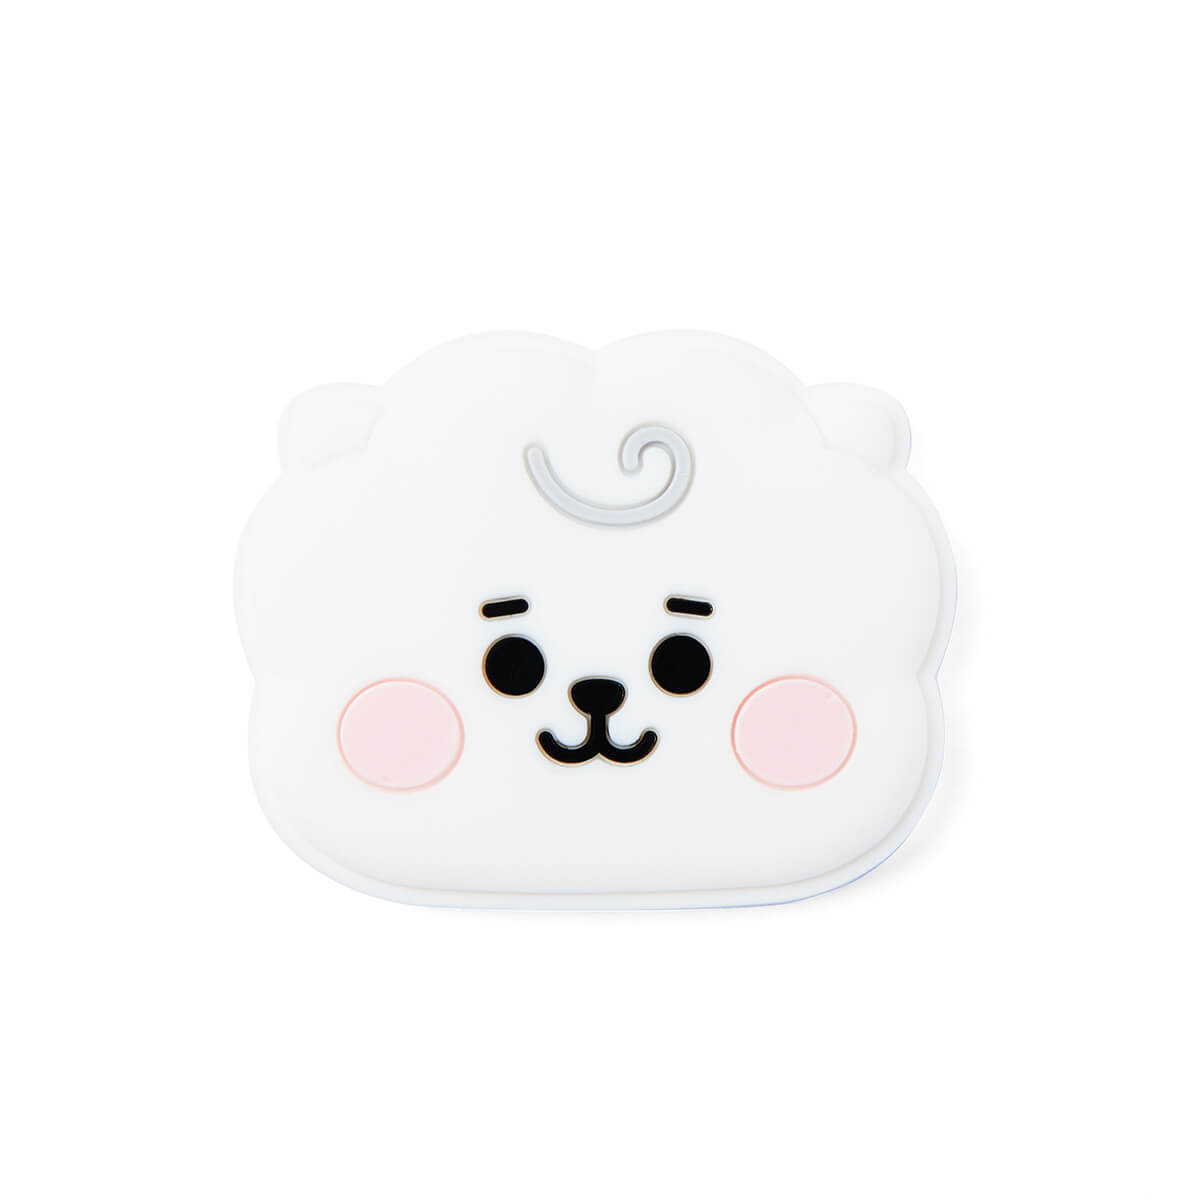 BT21 RJ Baby Silicone Magnet